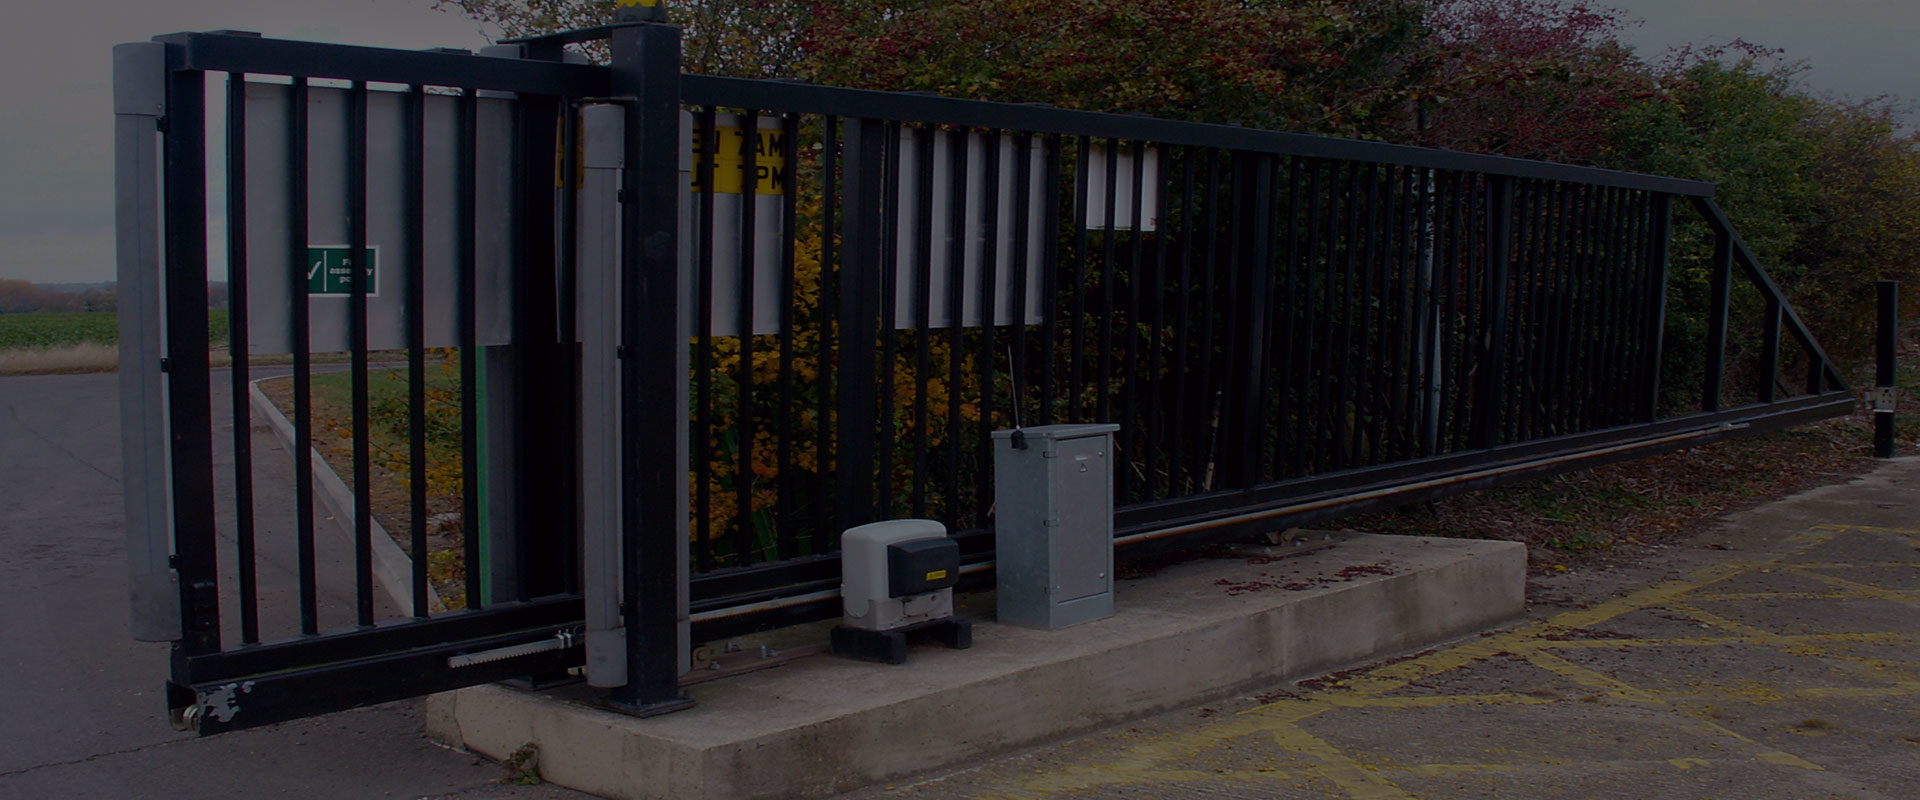 Automatic Gates Openers Residential Automatic Gate Repair Company San Jose Electric Driveway